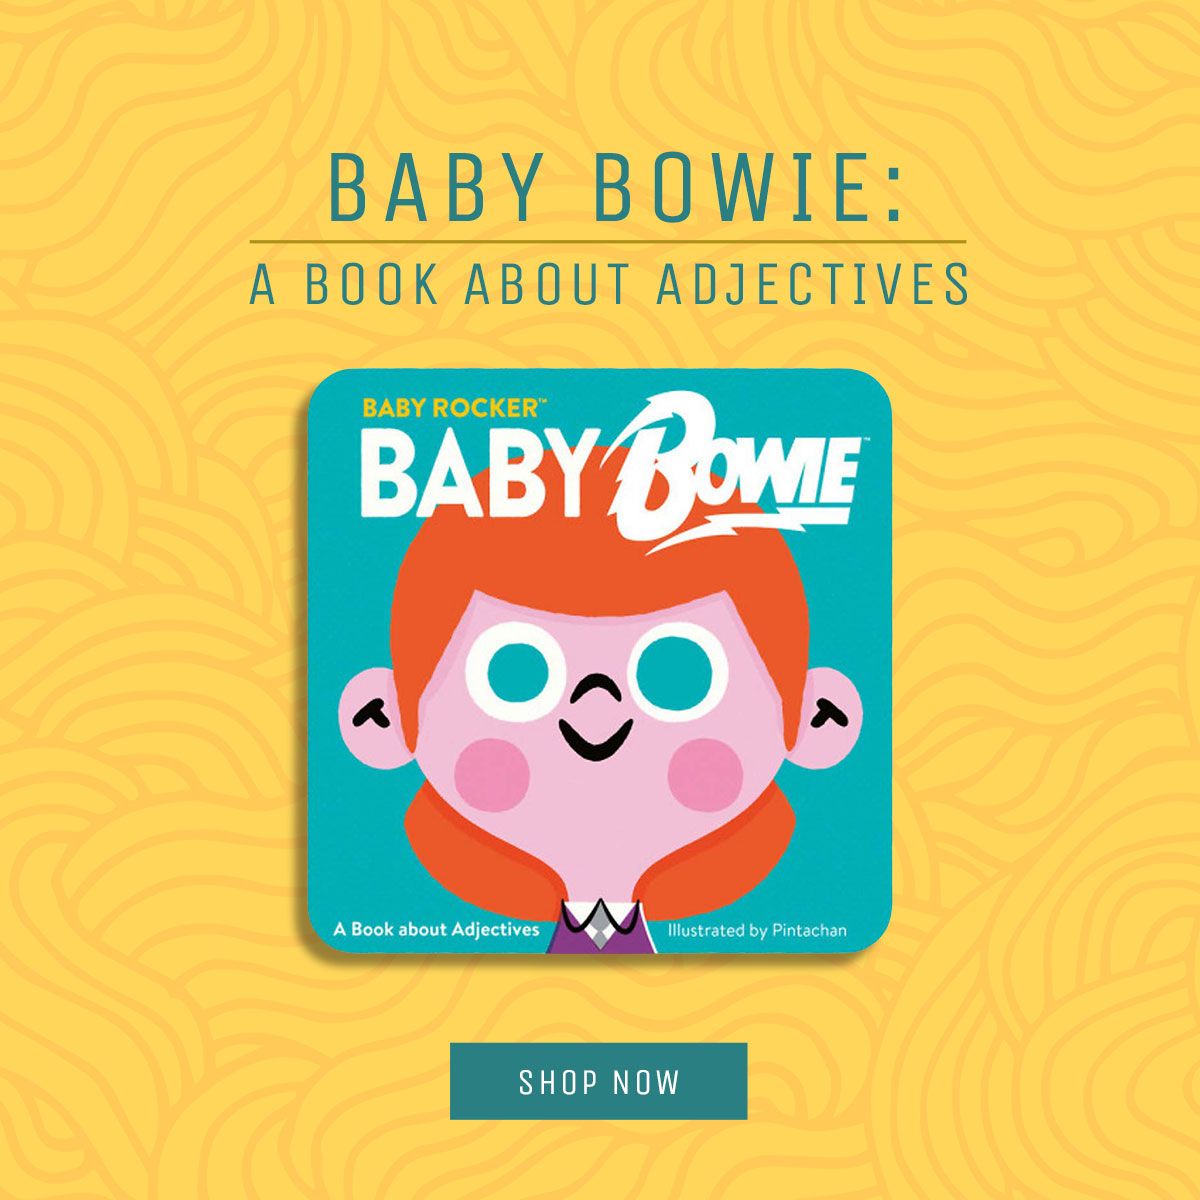 Baby Bowie Book - Shop Now.